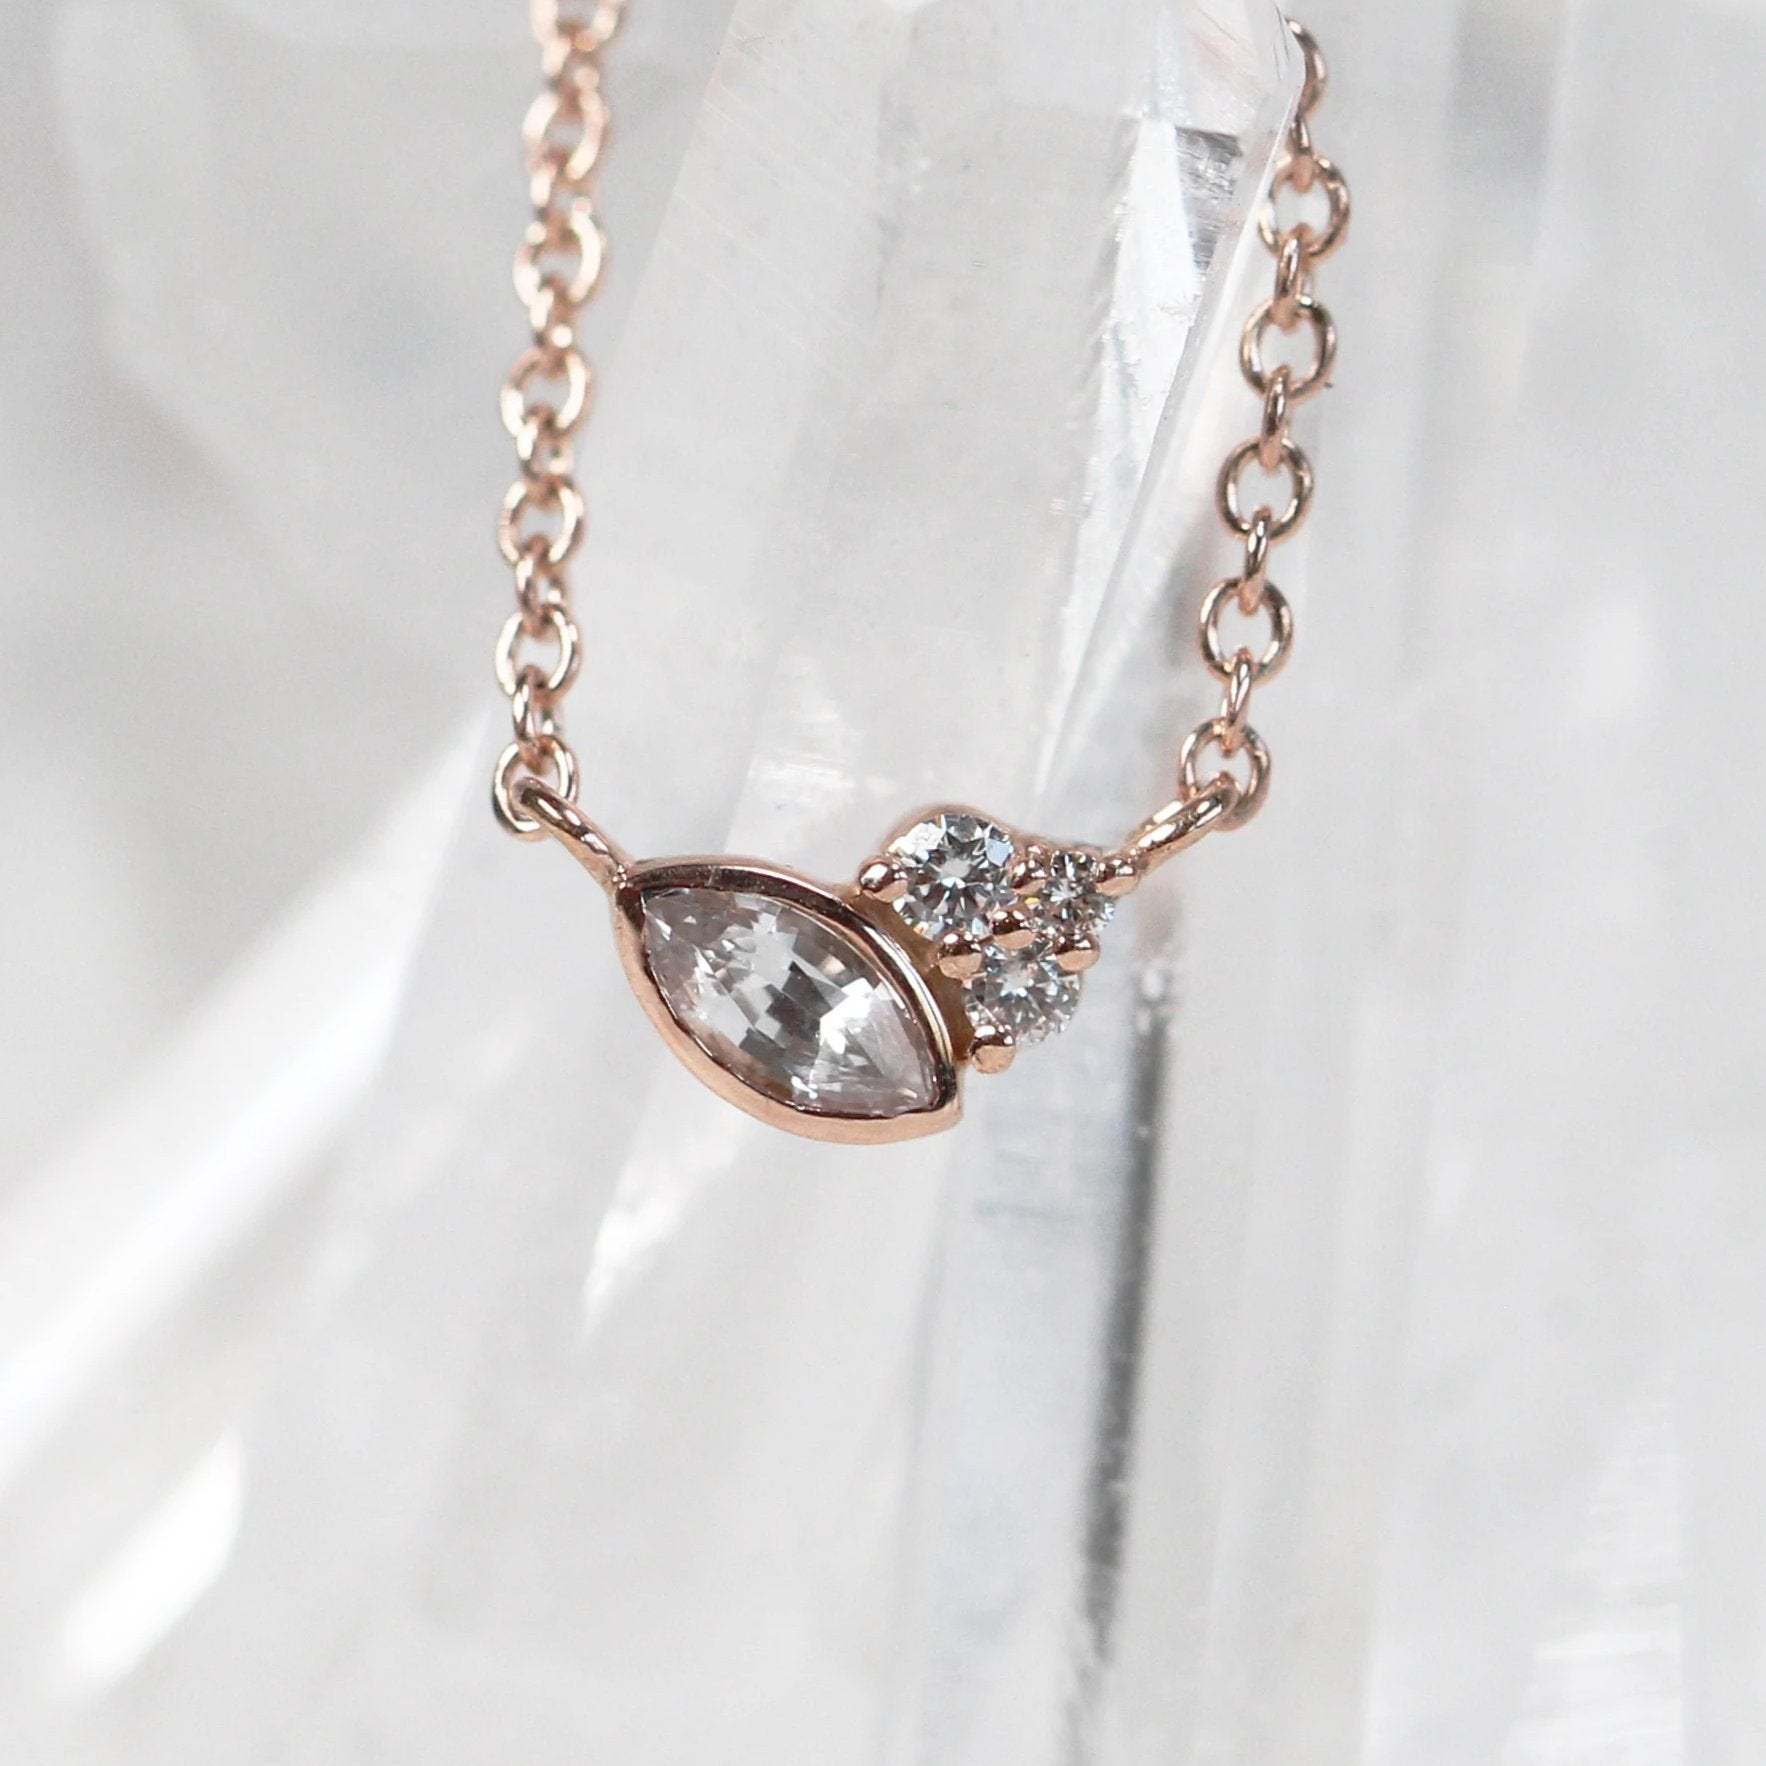 Jordan Necklace - Sapphire and Diamonds- 14k Rose Gold - Midwinter Co. Alternative Bridal Rings and Modern Fine Jewelry